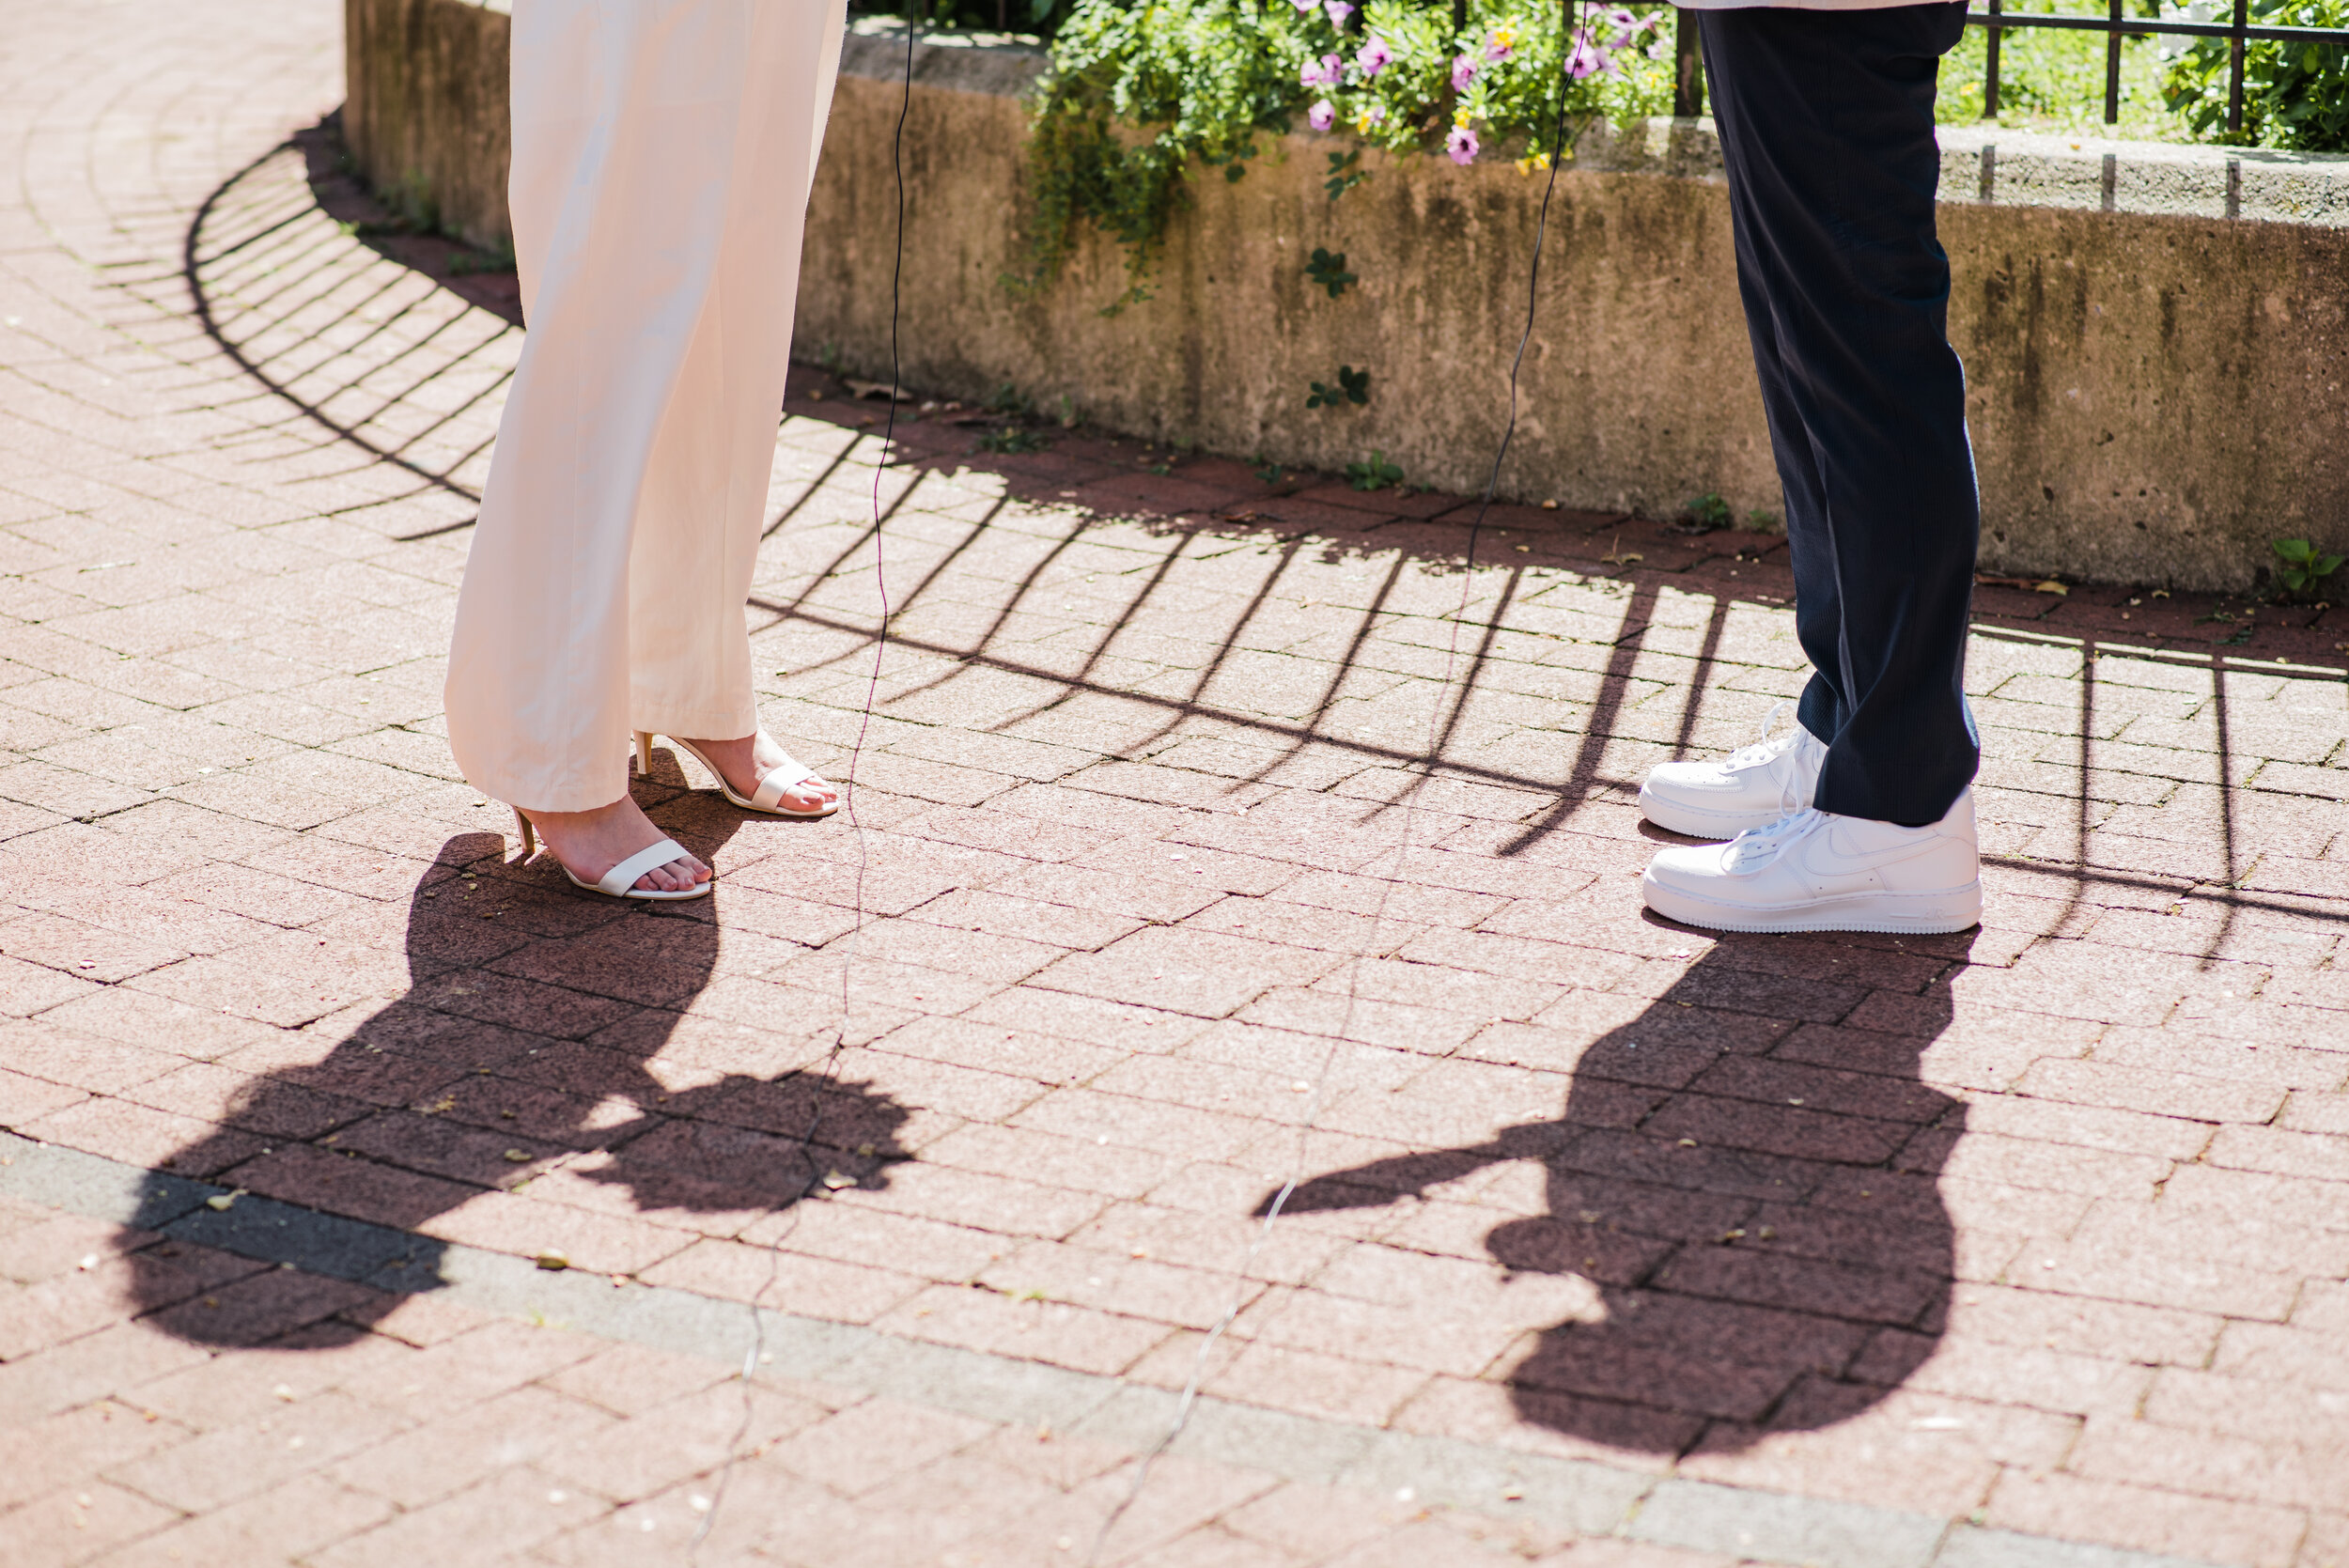 Shadows of a wedding couple at their outdoor elopement.